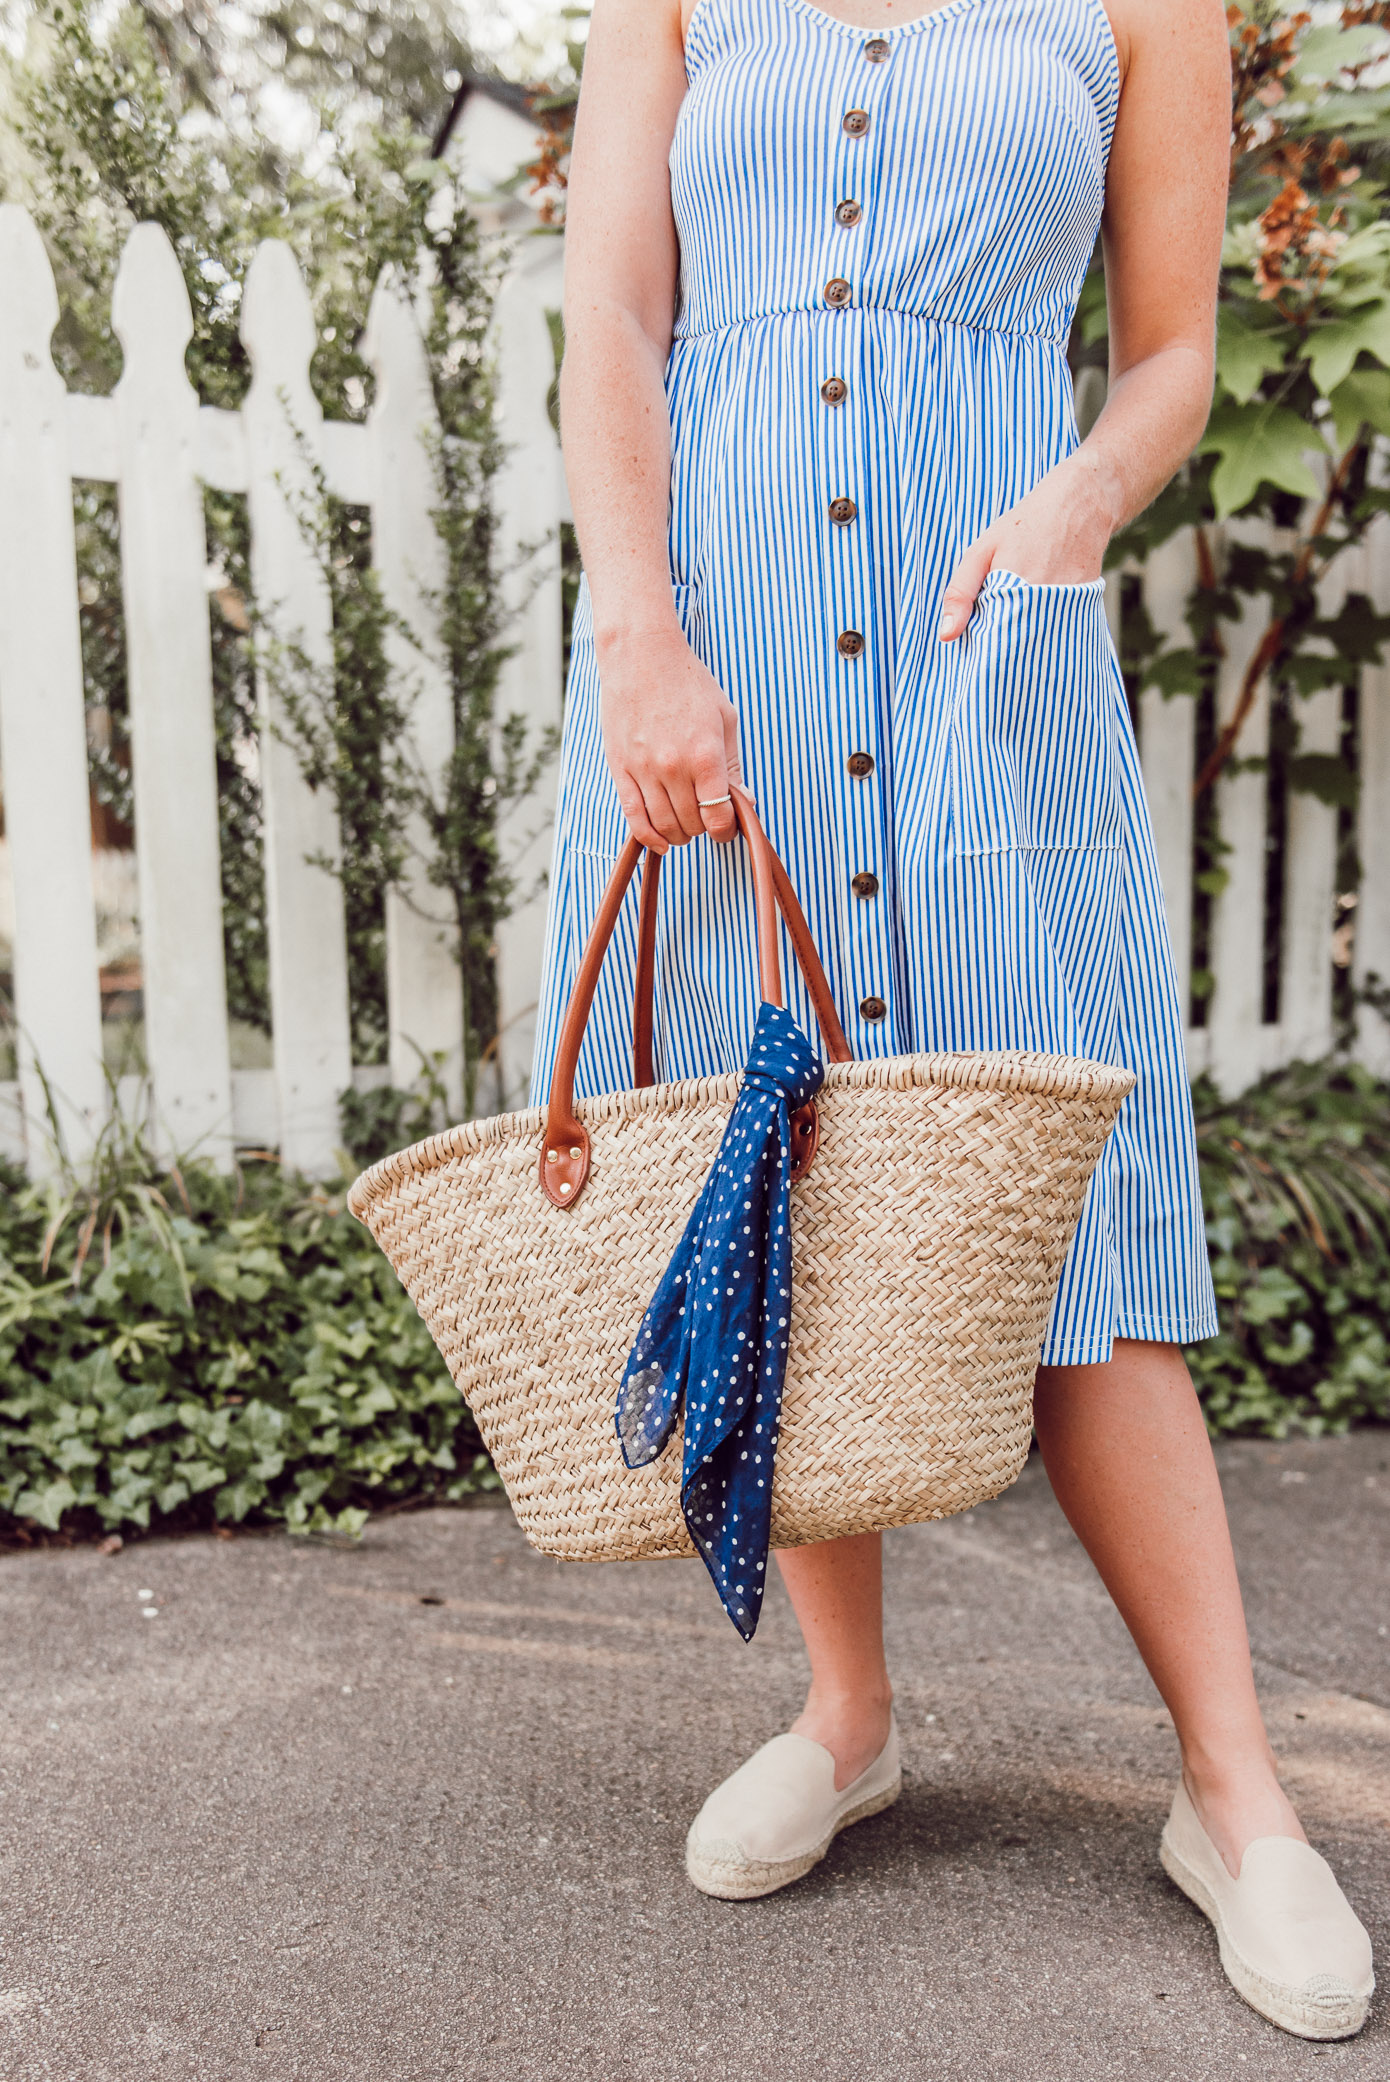 Amazon Dress under $25 | Summer Dresses, Large Straw Tote, Espadrille Loafers | Louella Reese